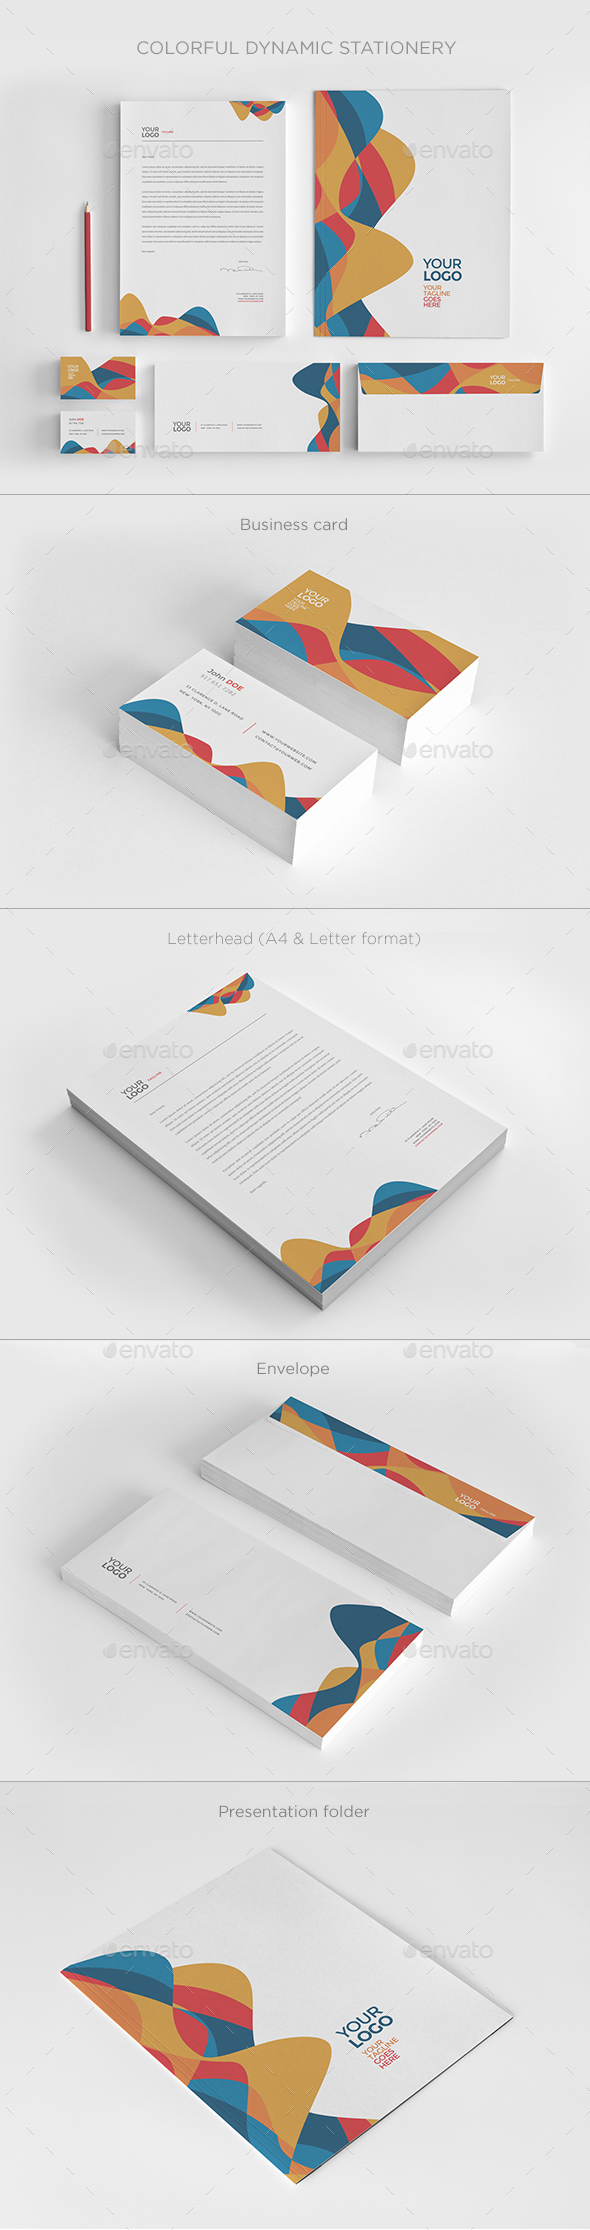 Colorful Dynamic Stationery - Stationery Print Templates